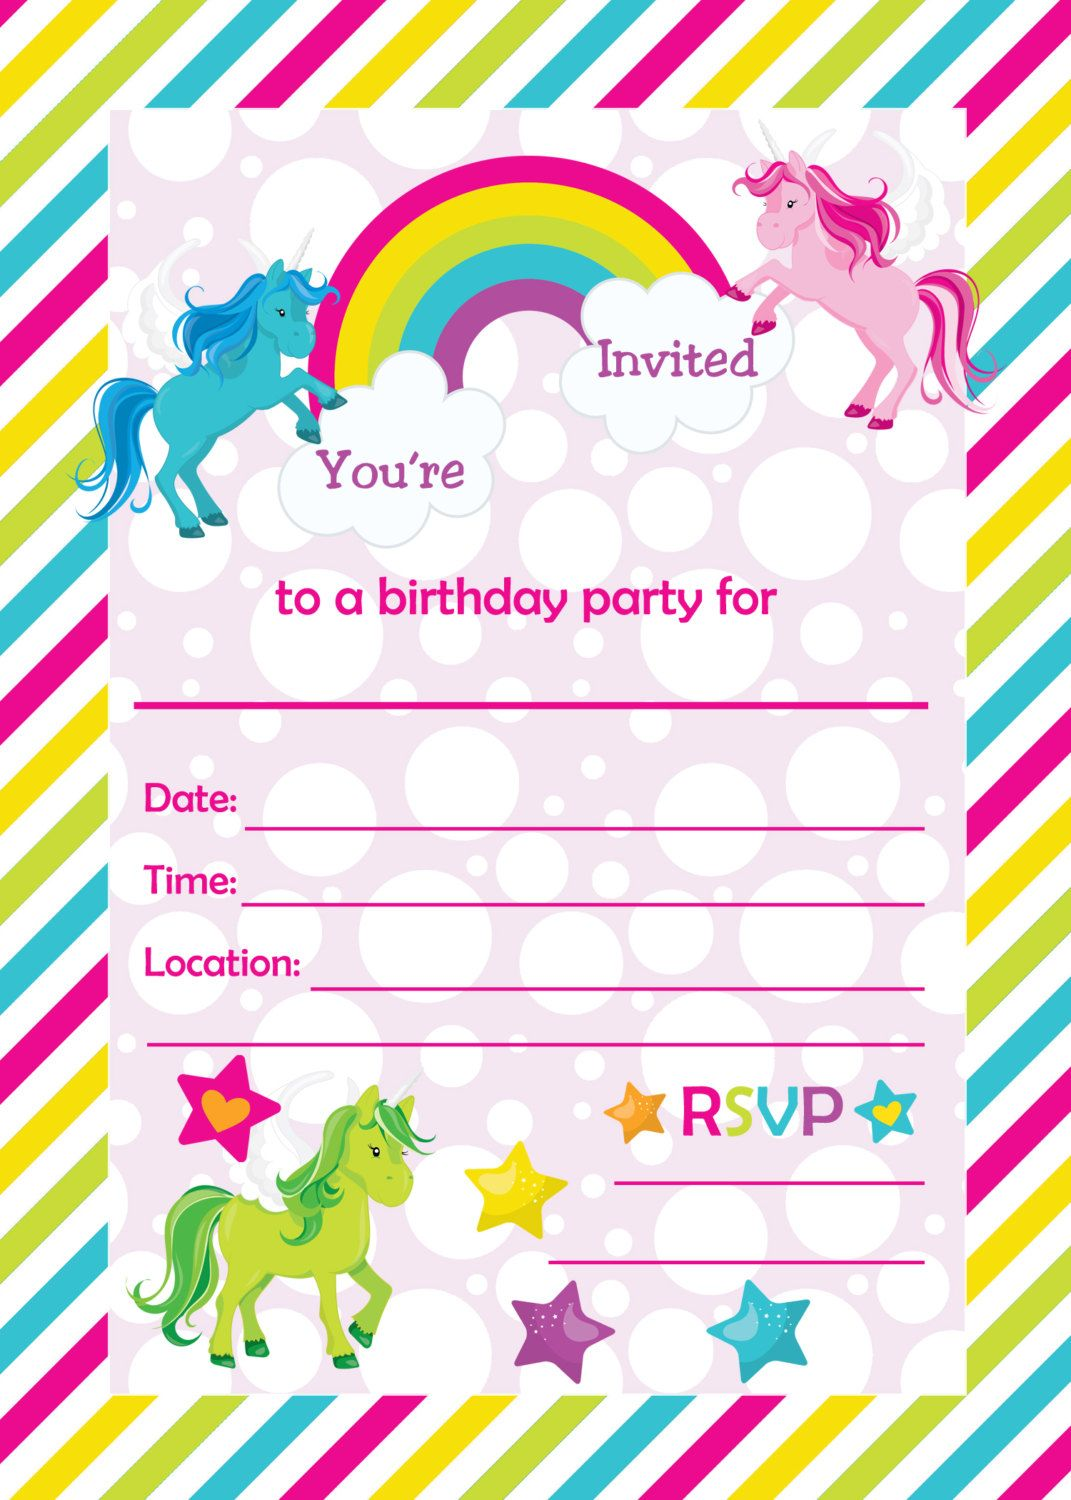 Cool Invitation For Birthday Party   Inviwall.co